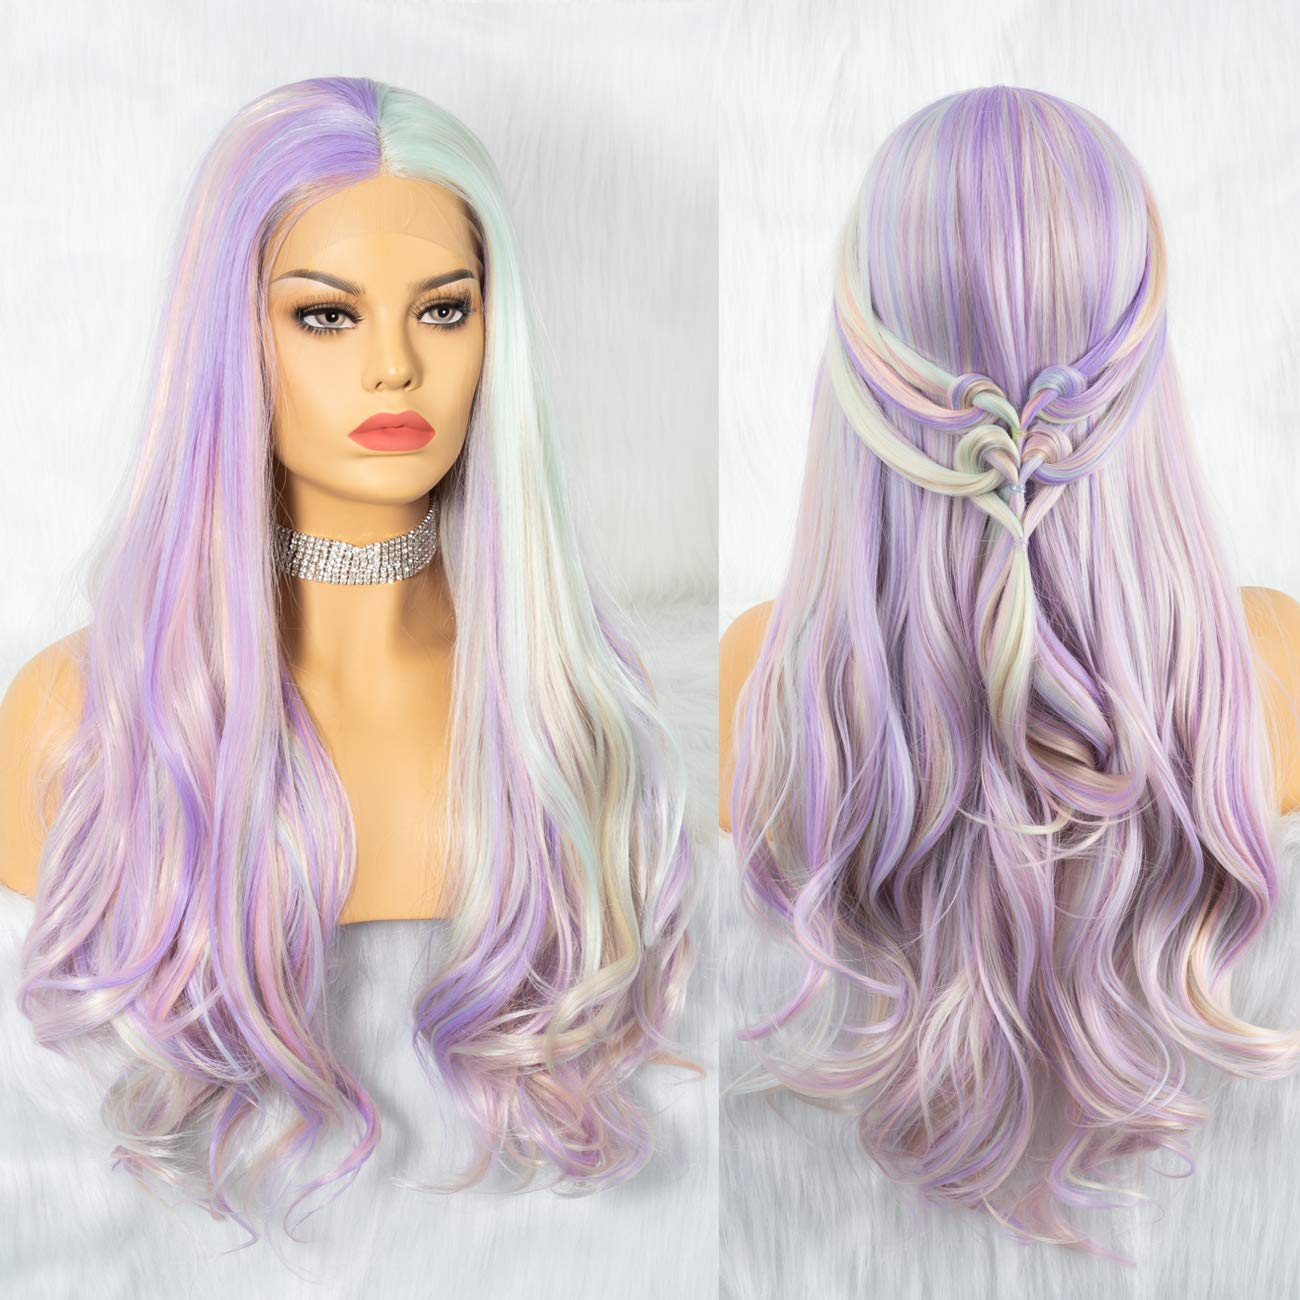 Cosswigs Pastel Wigs for Women Mix 5 Color Light Green Purple Rainbow Synthetic Lace Front Wig Middle Parting Long Wavy Lace Wigs 24inches by Cosswigs